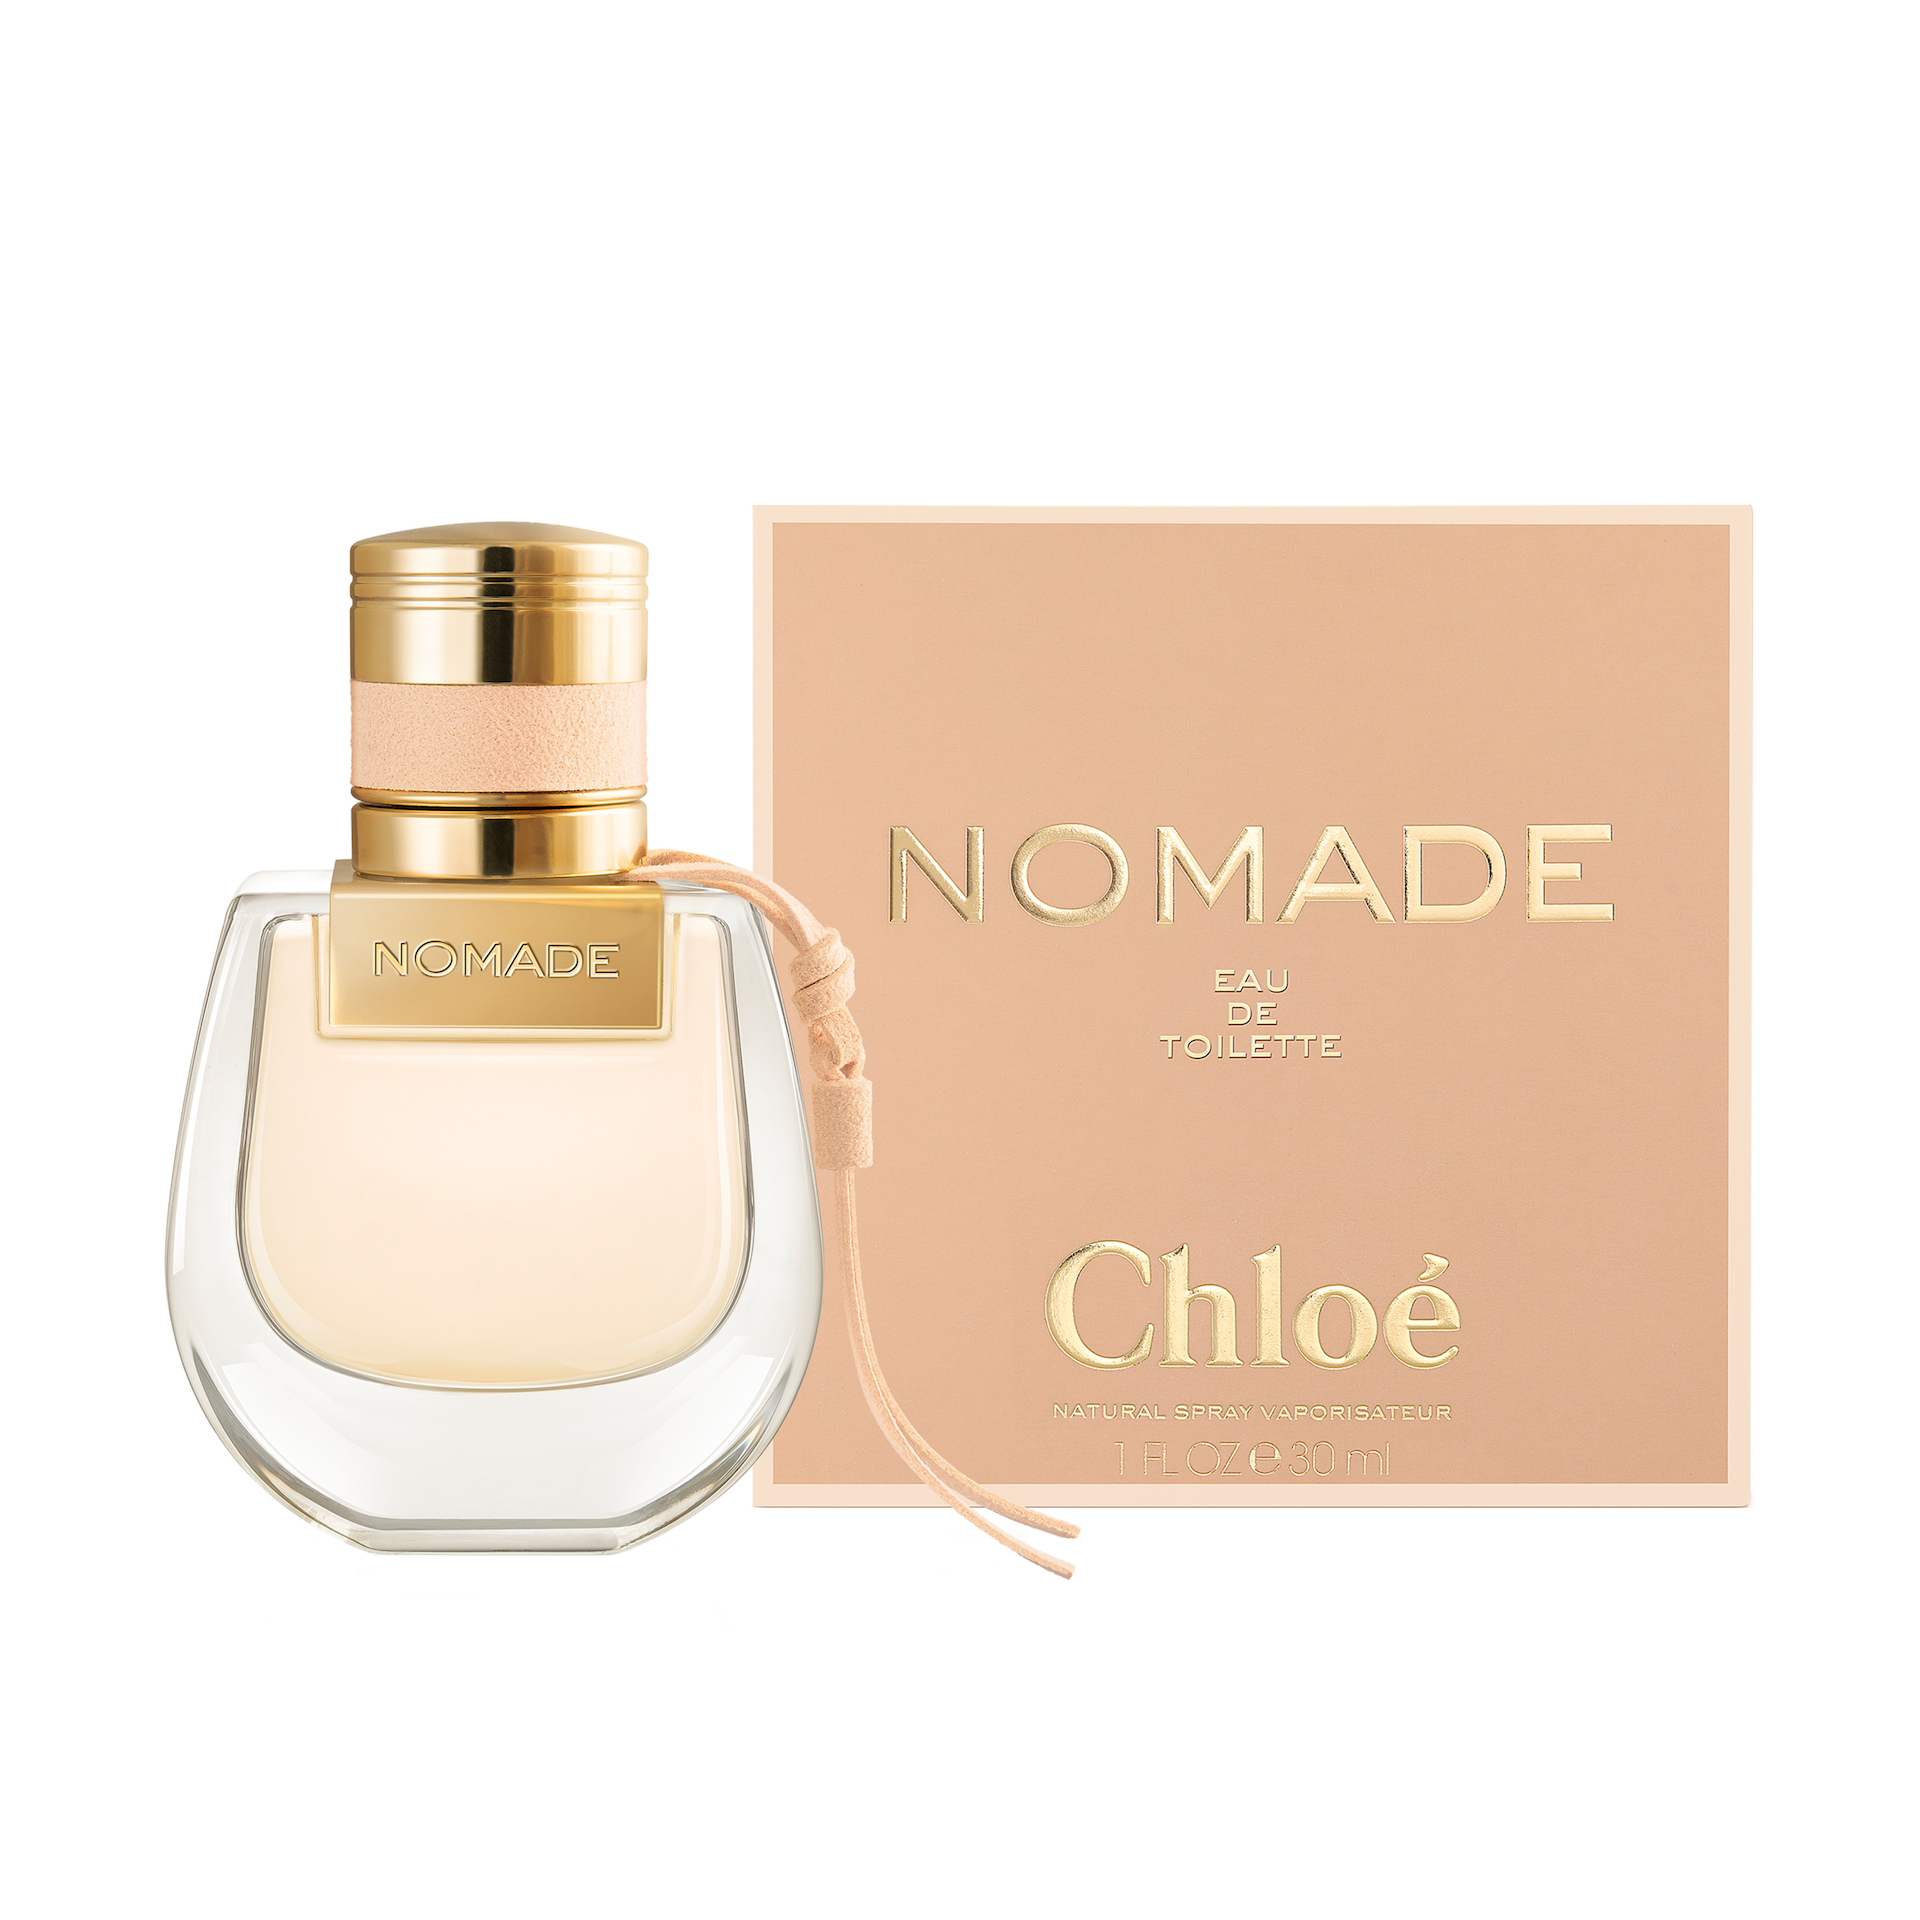 Nomade Edt 30 ml